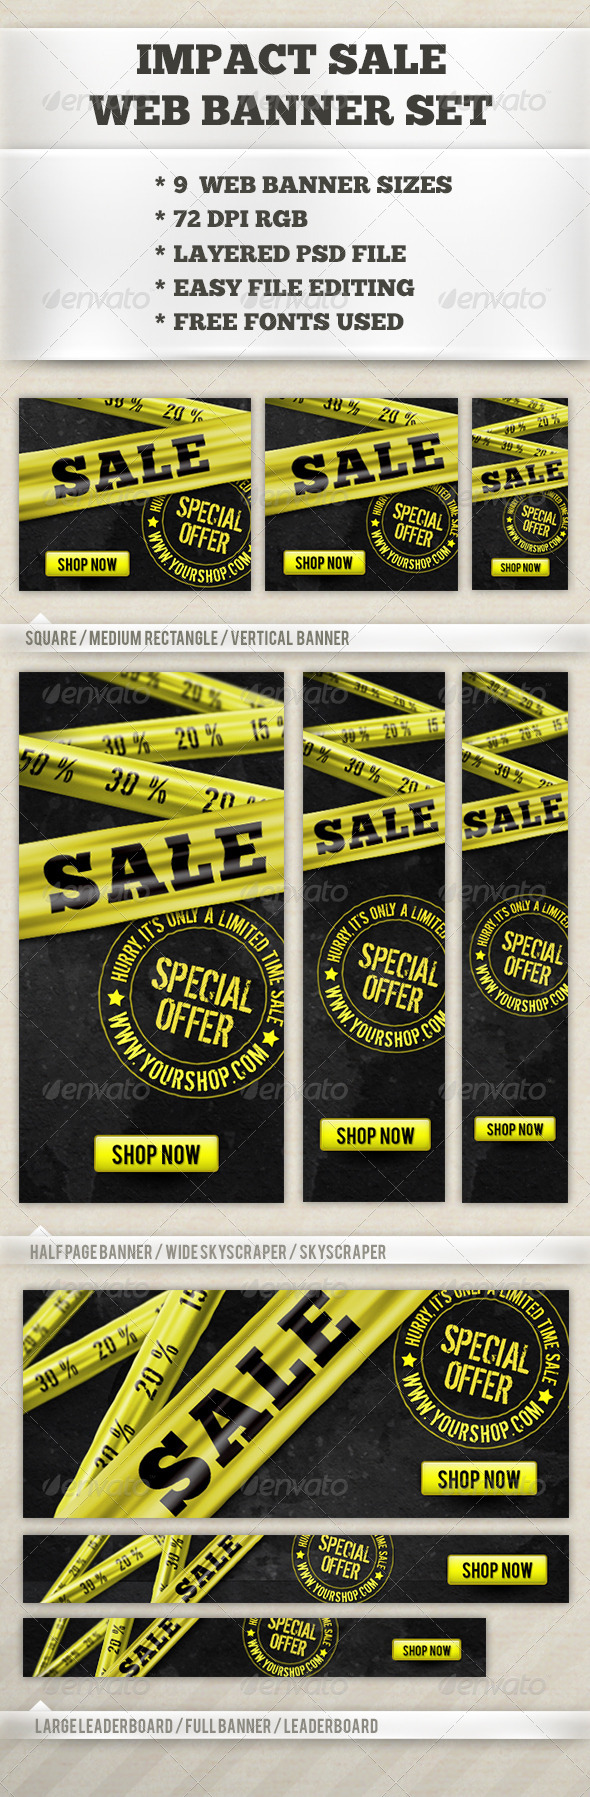 Impact Sale Banner - Banners & Ads Web Elements